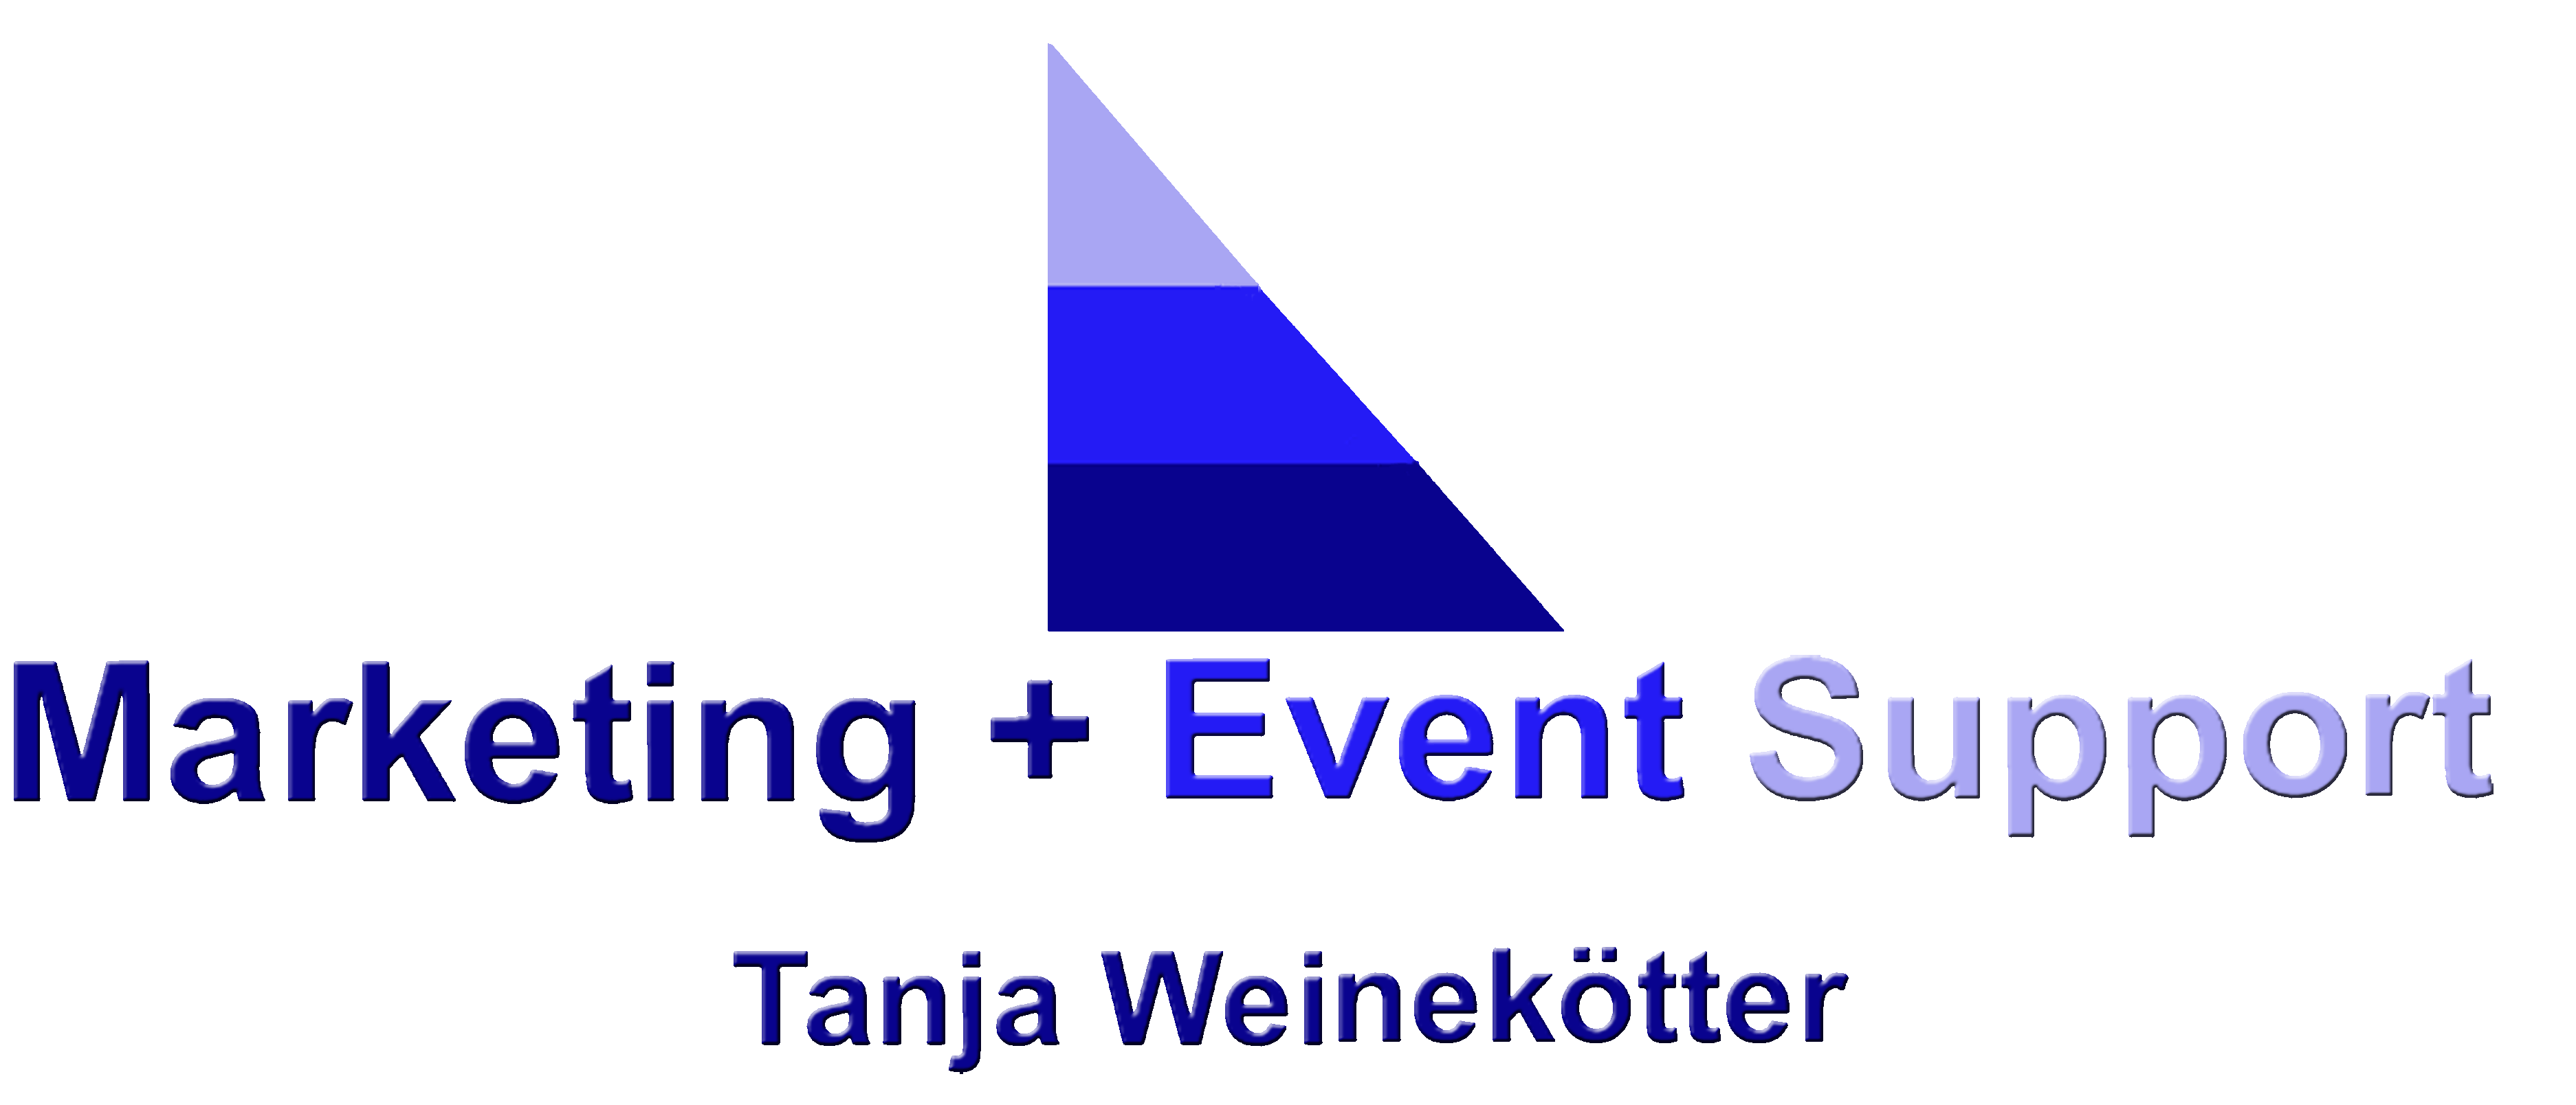 Marketing Event Support